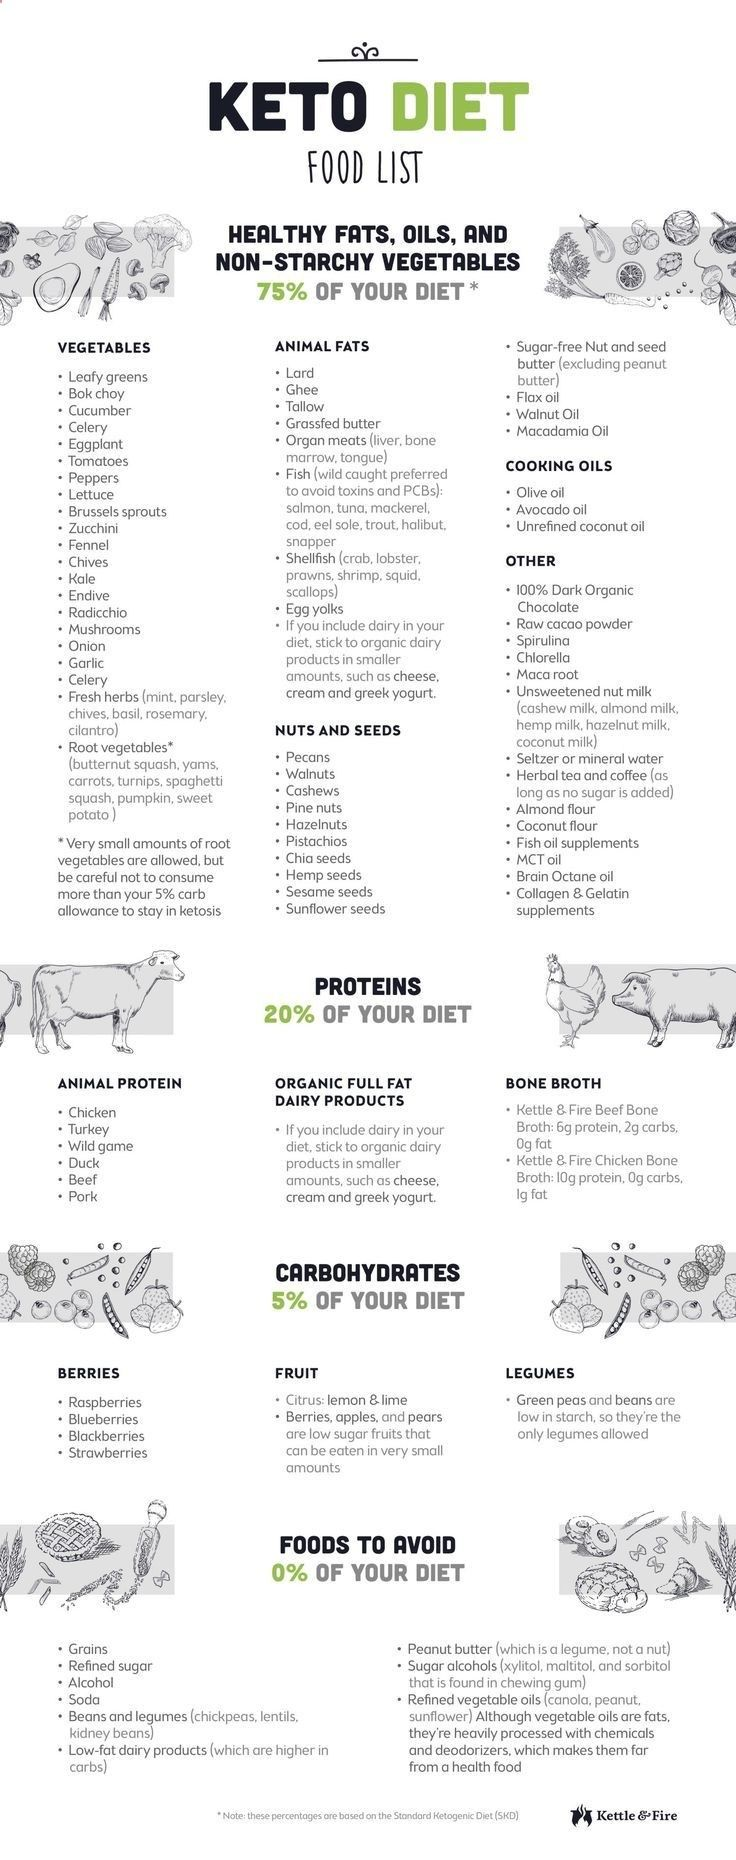 A Detailed Keto Diet Food List To Help Guide Your Choices